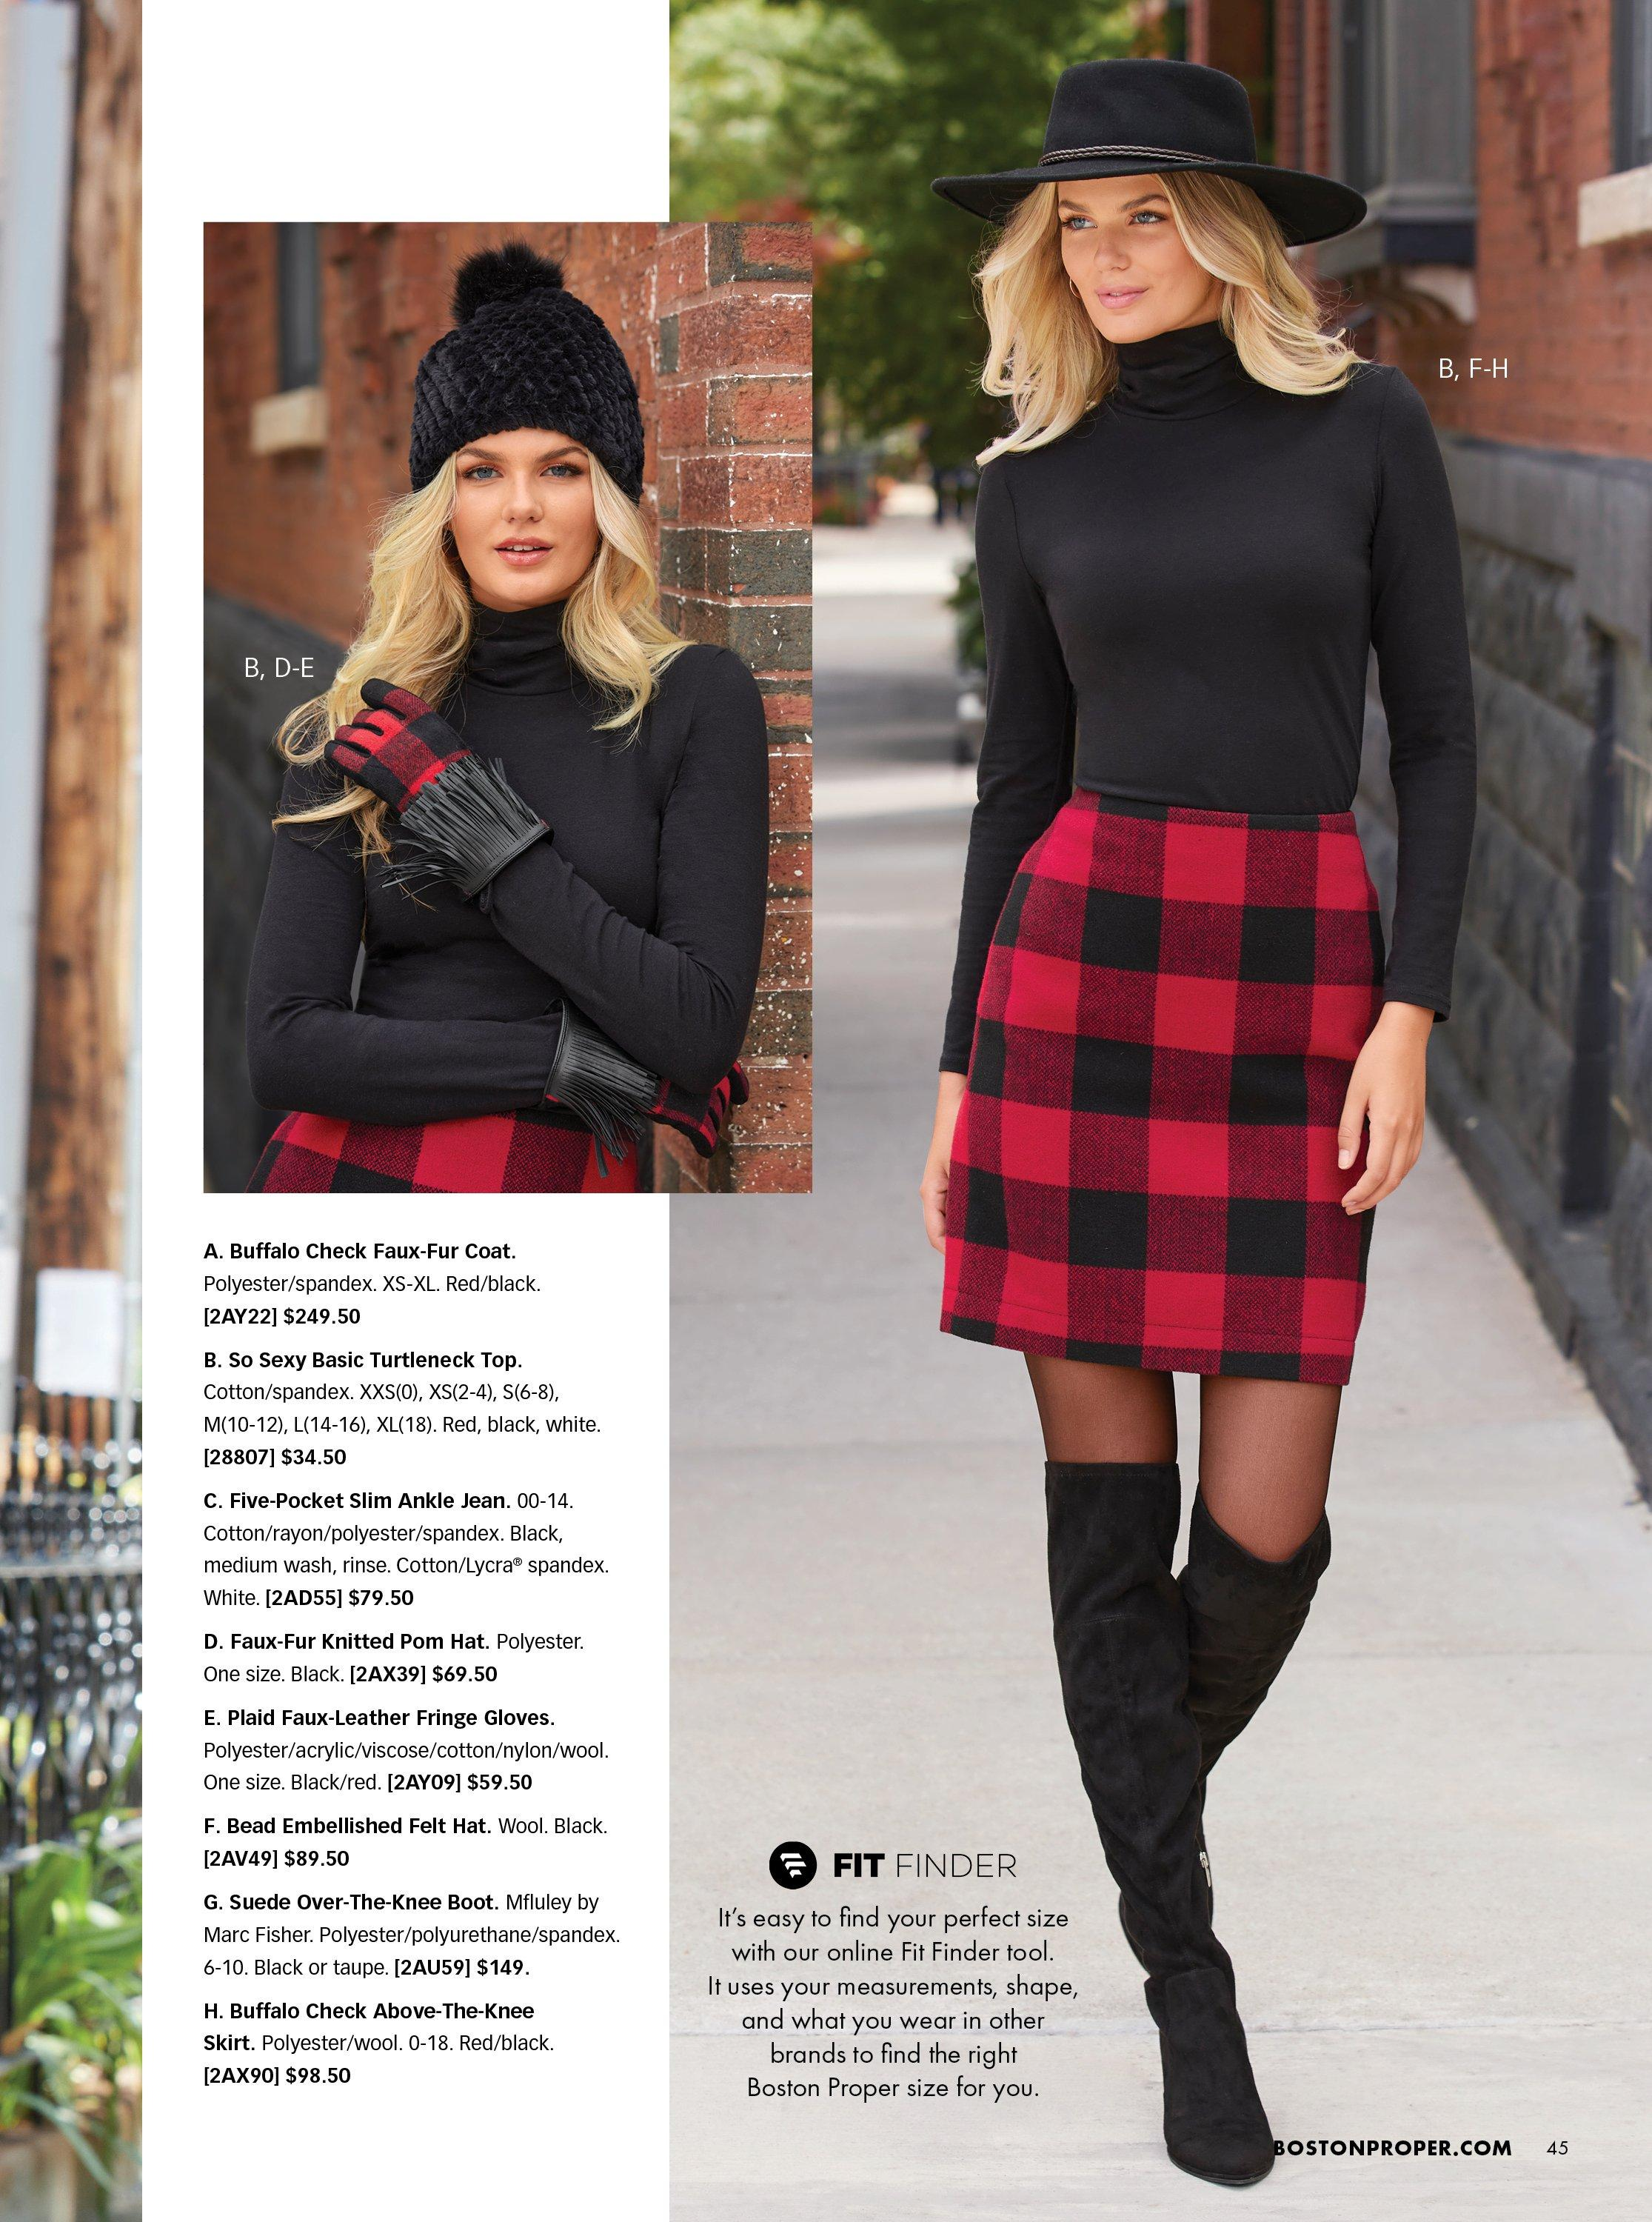 left model wearing a black beanie, black long sleeve turtleneck top, and black and red plaid gloves. right model wearing a black floppy hat, black turtleneck long sleeve top, black and red plaid skirt, and over-the-knee black boots.